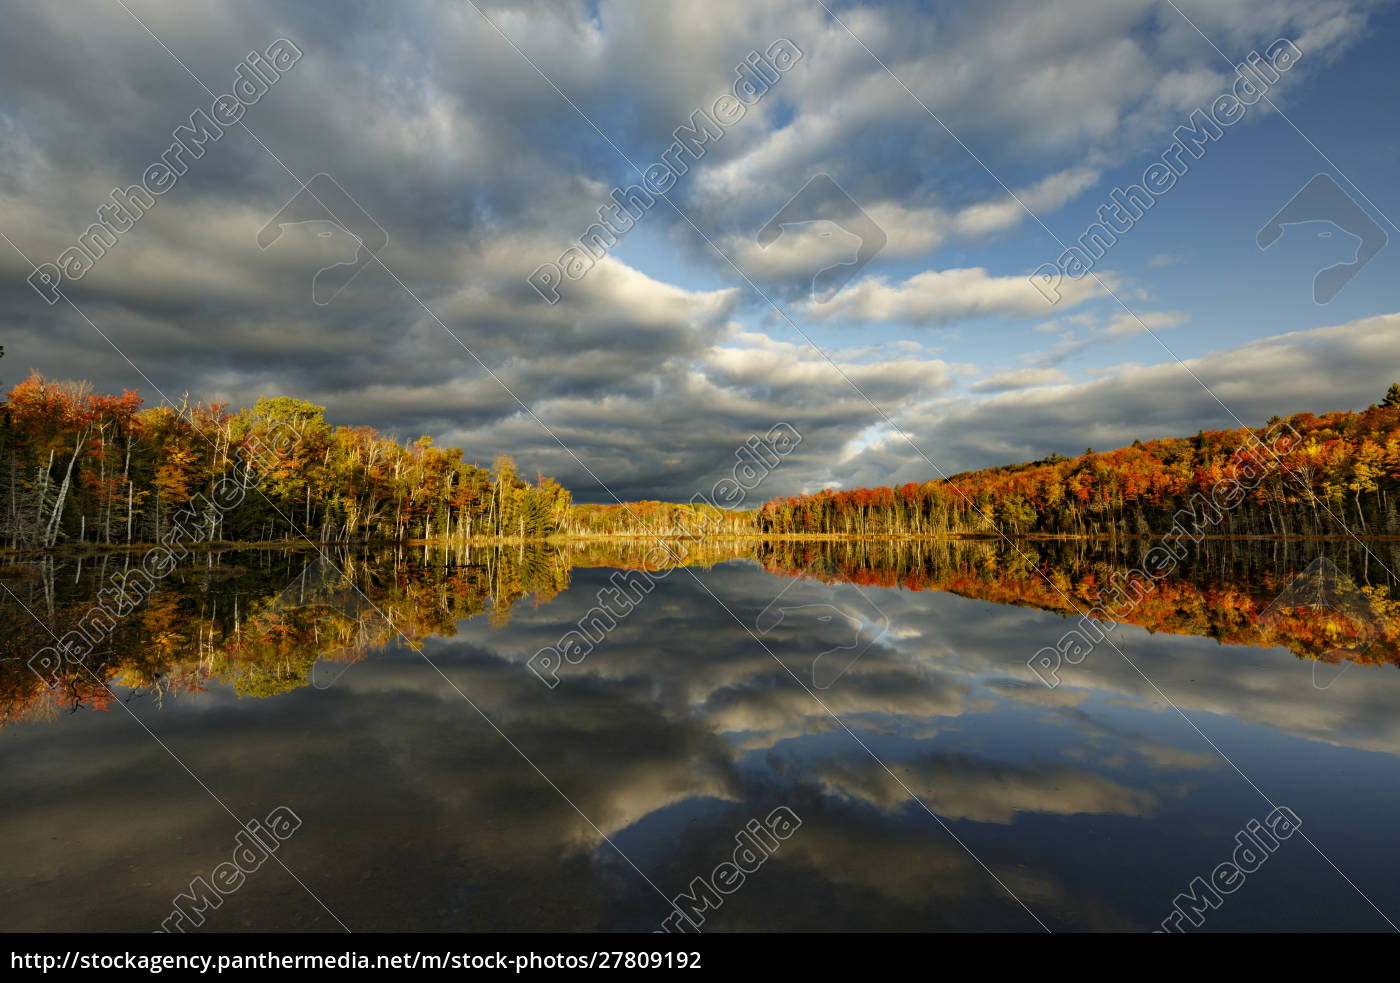 red, jack, lake, and, sunrise, reflection, - 27809192